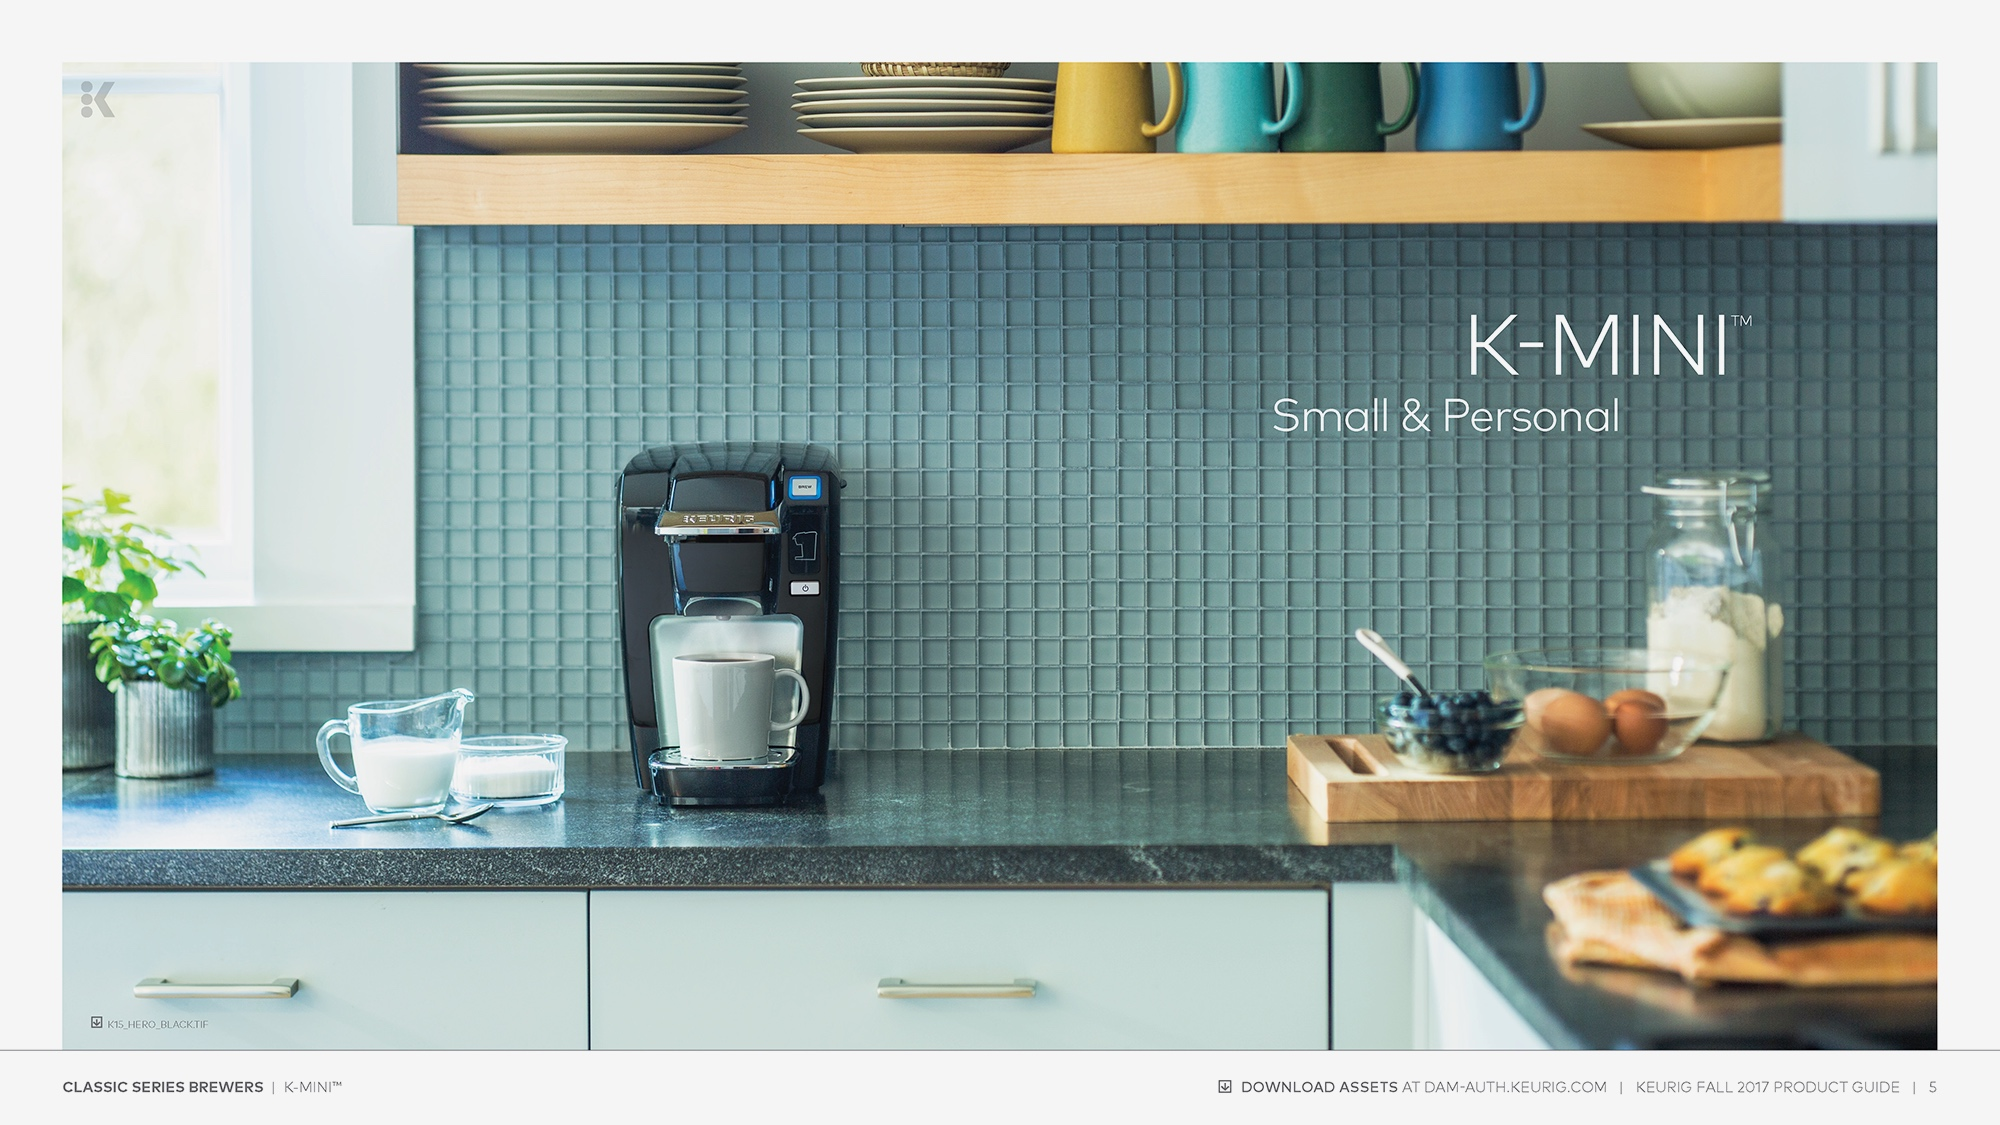 keurig_product_guide_F17_R8_Page_05.png